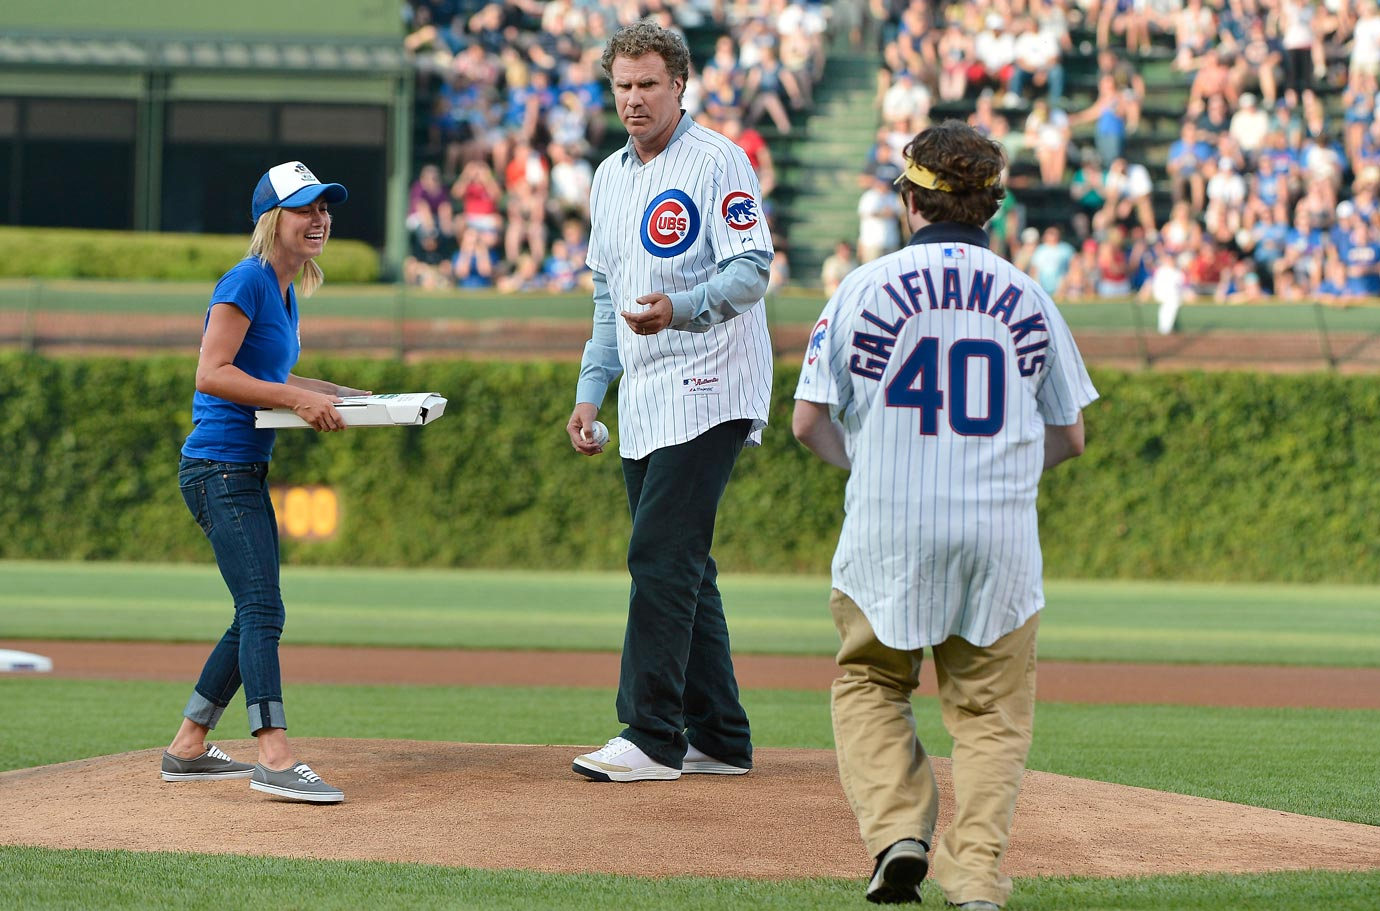 Will Ferrell looks to Zach Galifianakis for money to pay a pizza delivery girl prior to throwing out the first pitch for the Chicago Cubs game against the Florida Marlins on July 18, 2012 at Wrigley Field in Chicago.